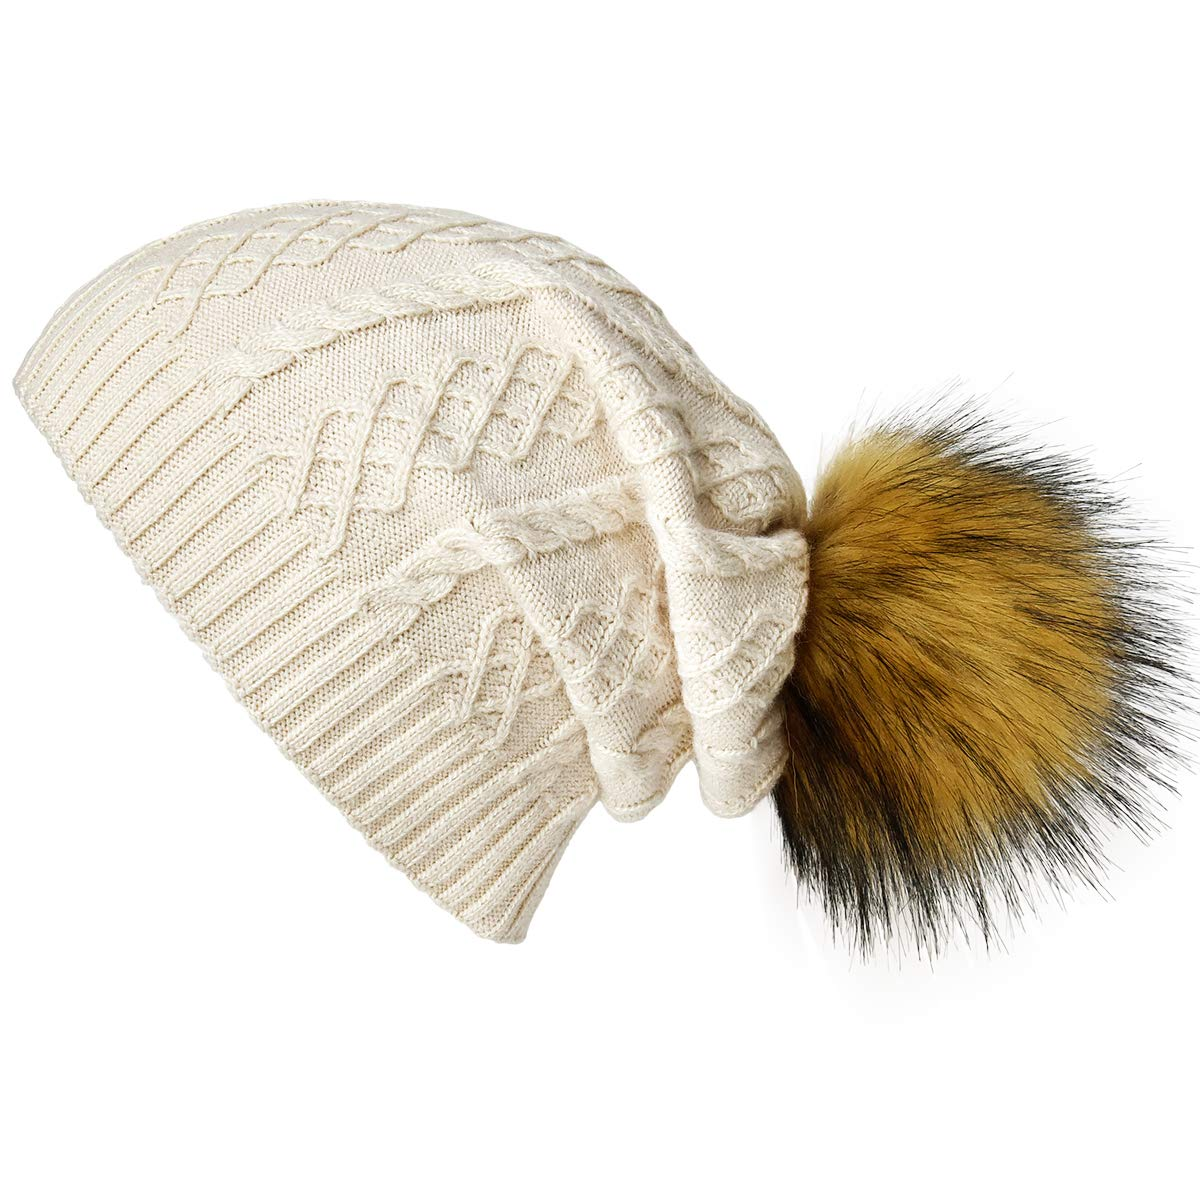 This Women beanies hat can give you fashion slouchy look and enough space  for thick hair 50a010e6e0c6